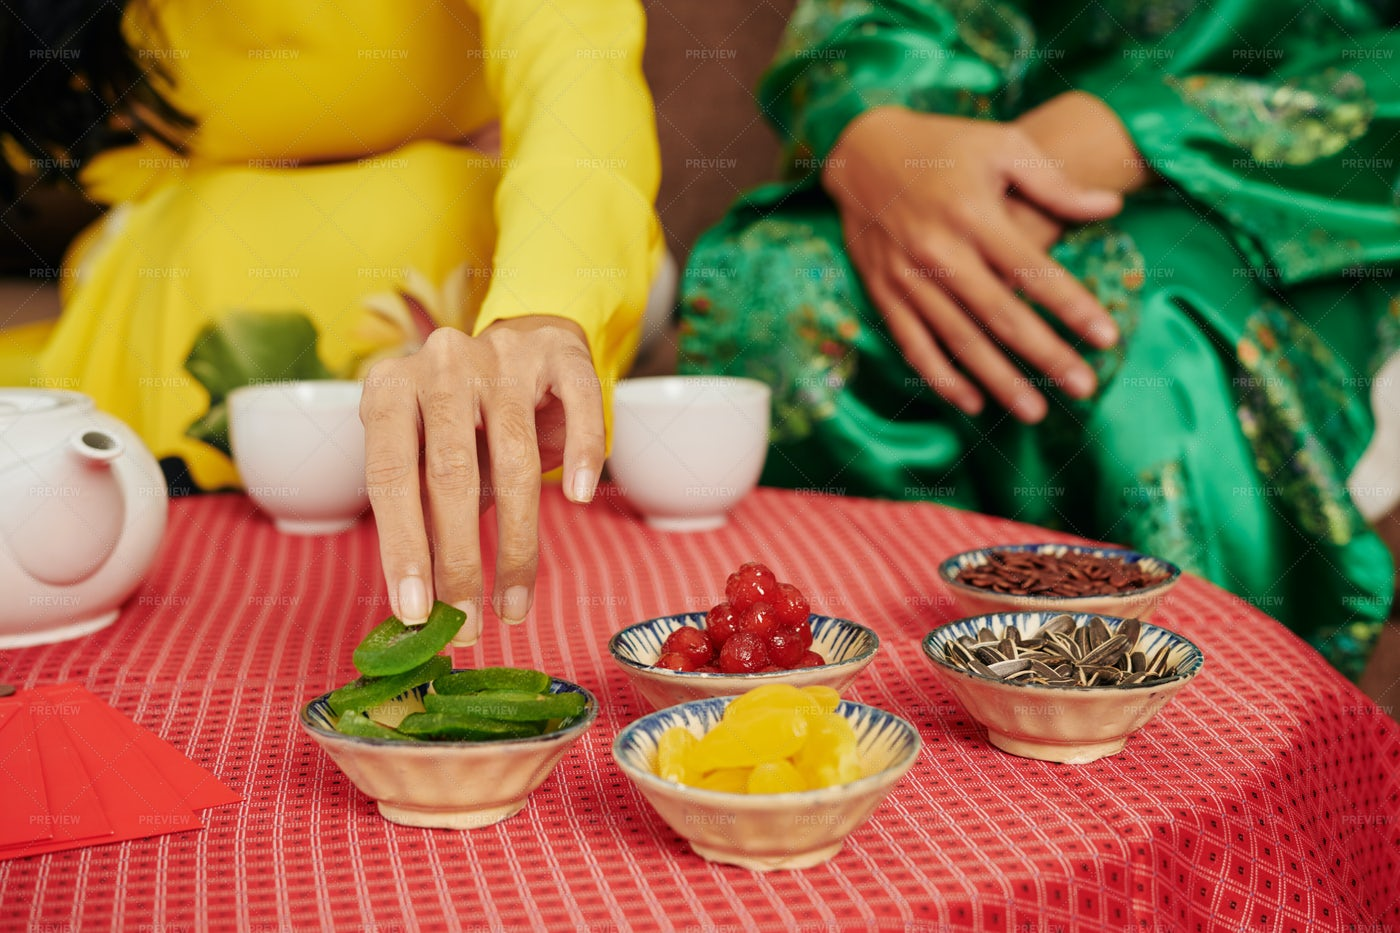 Tea With Dried Fruies And Berries: Stock Photos